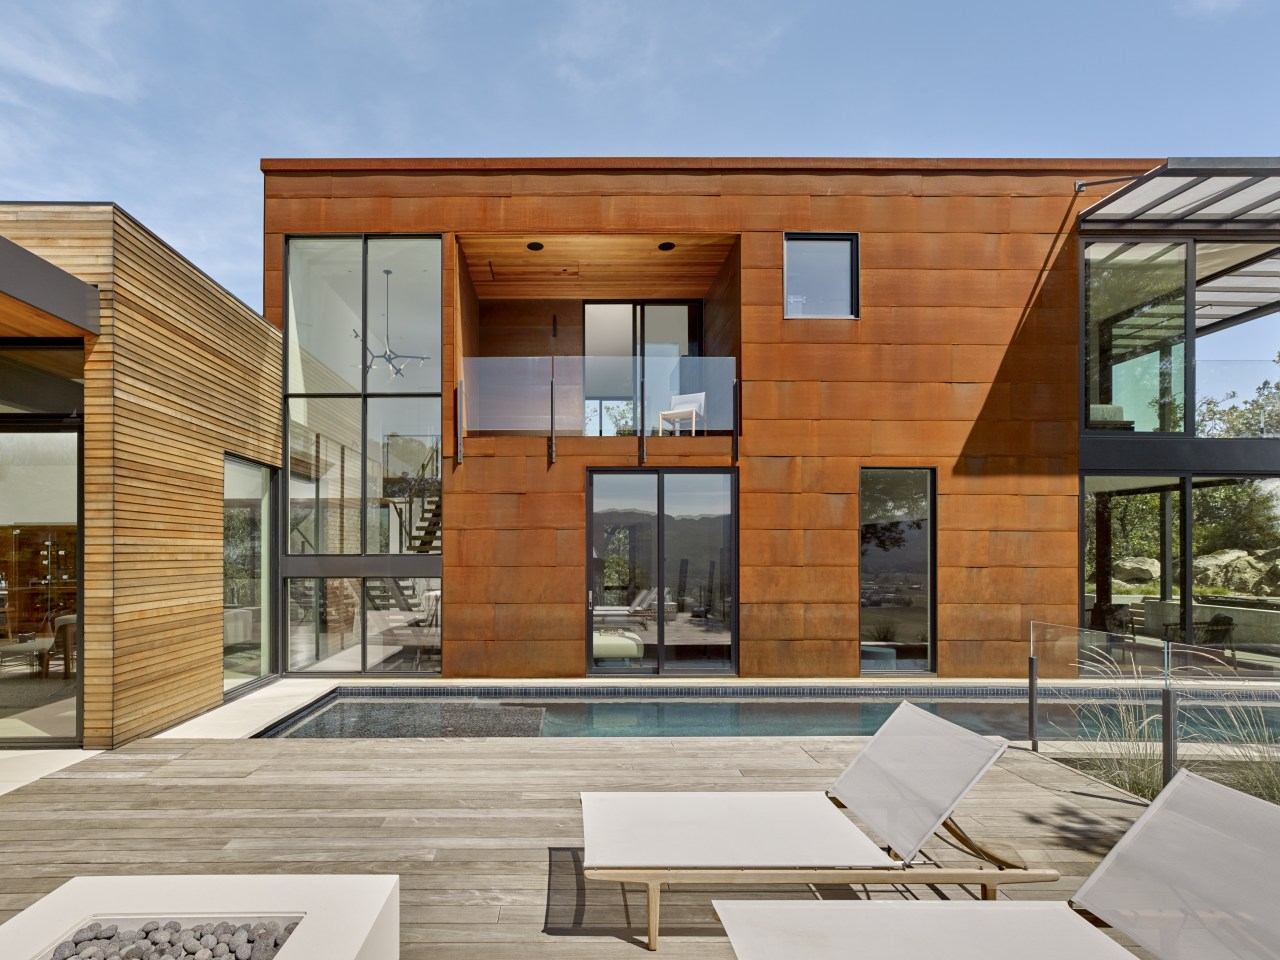 ​​​​​​​In contrast to the wood box that contains architecture, design, facade, home, house, timber cladding, pool, de Vito Architecture + Construction